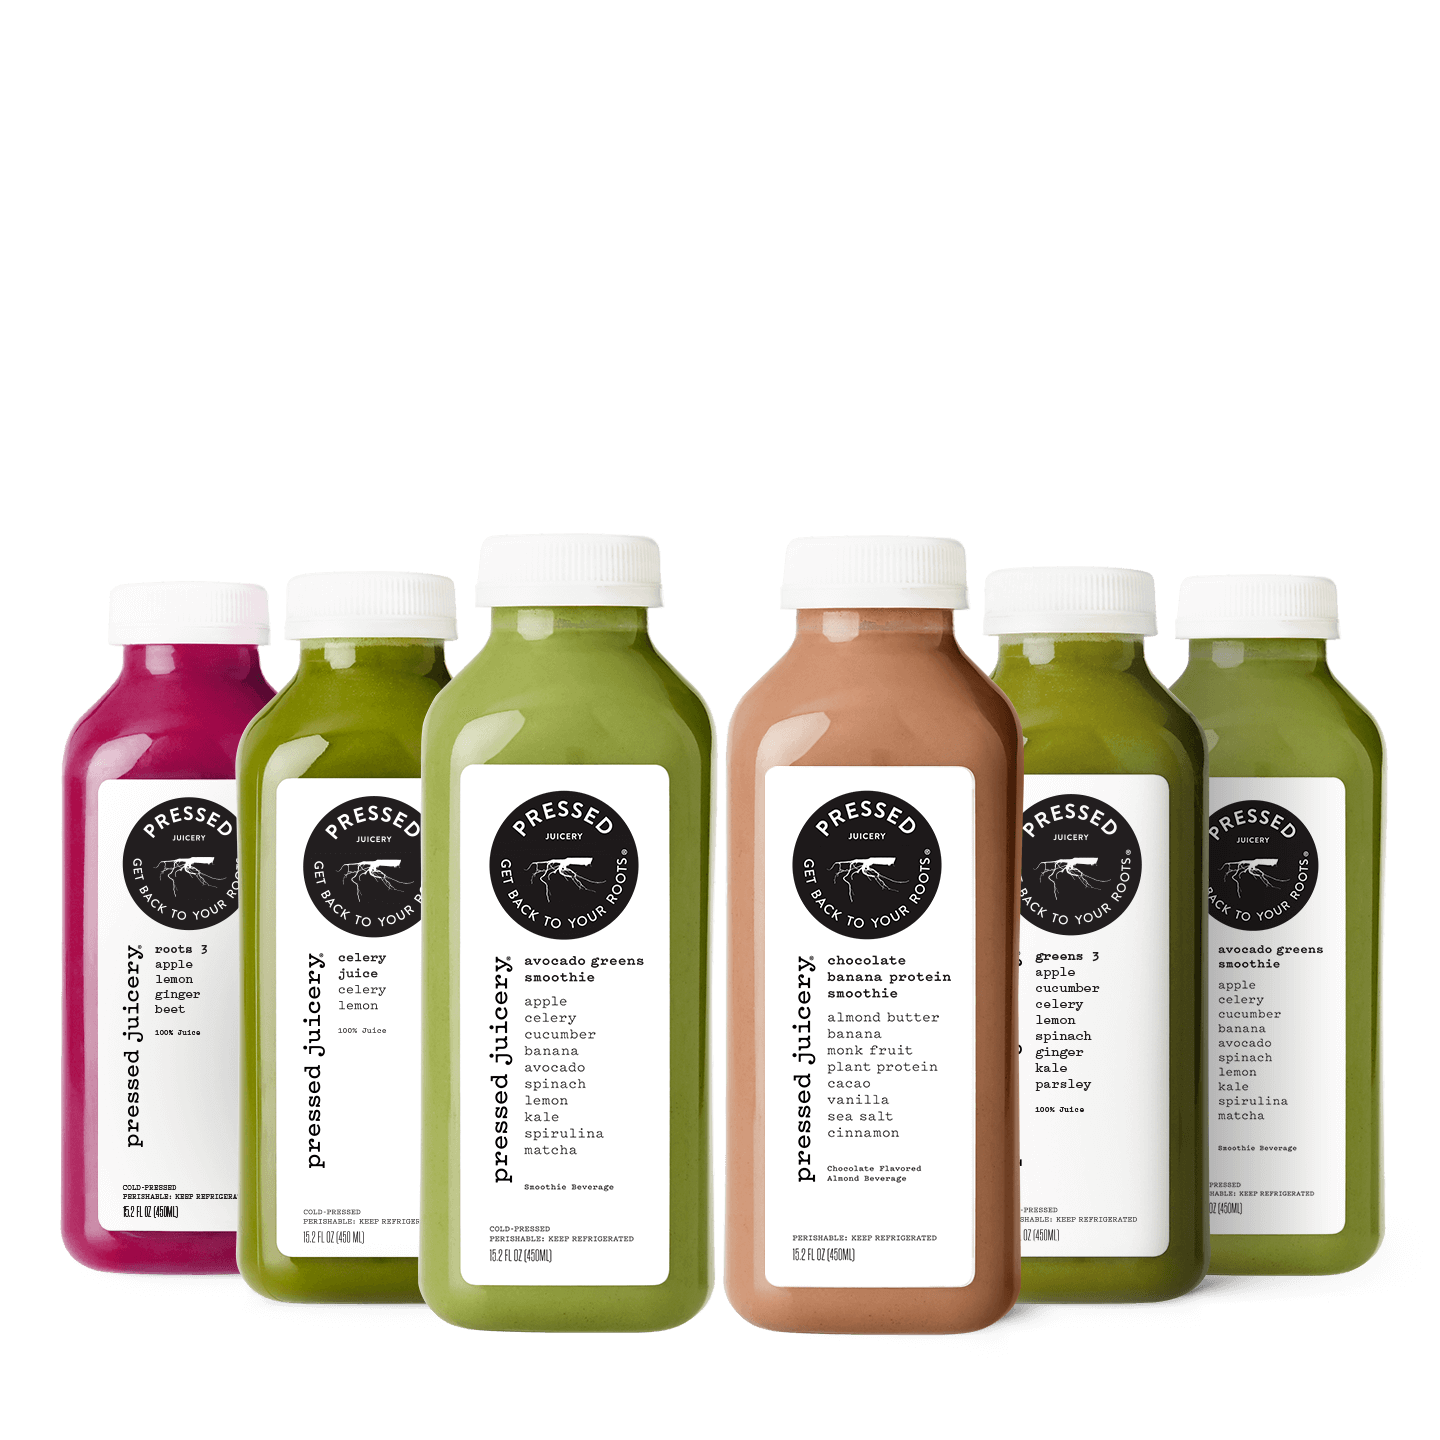 Full Day Smoothie Cleanse product image